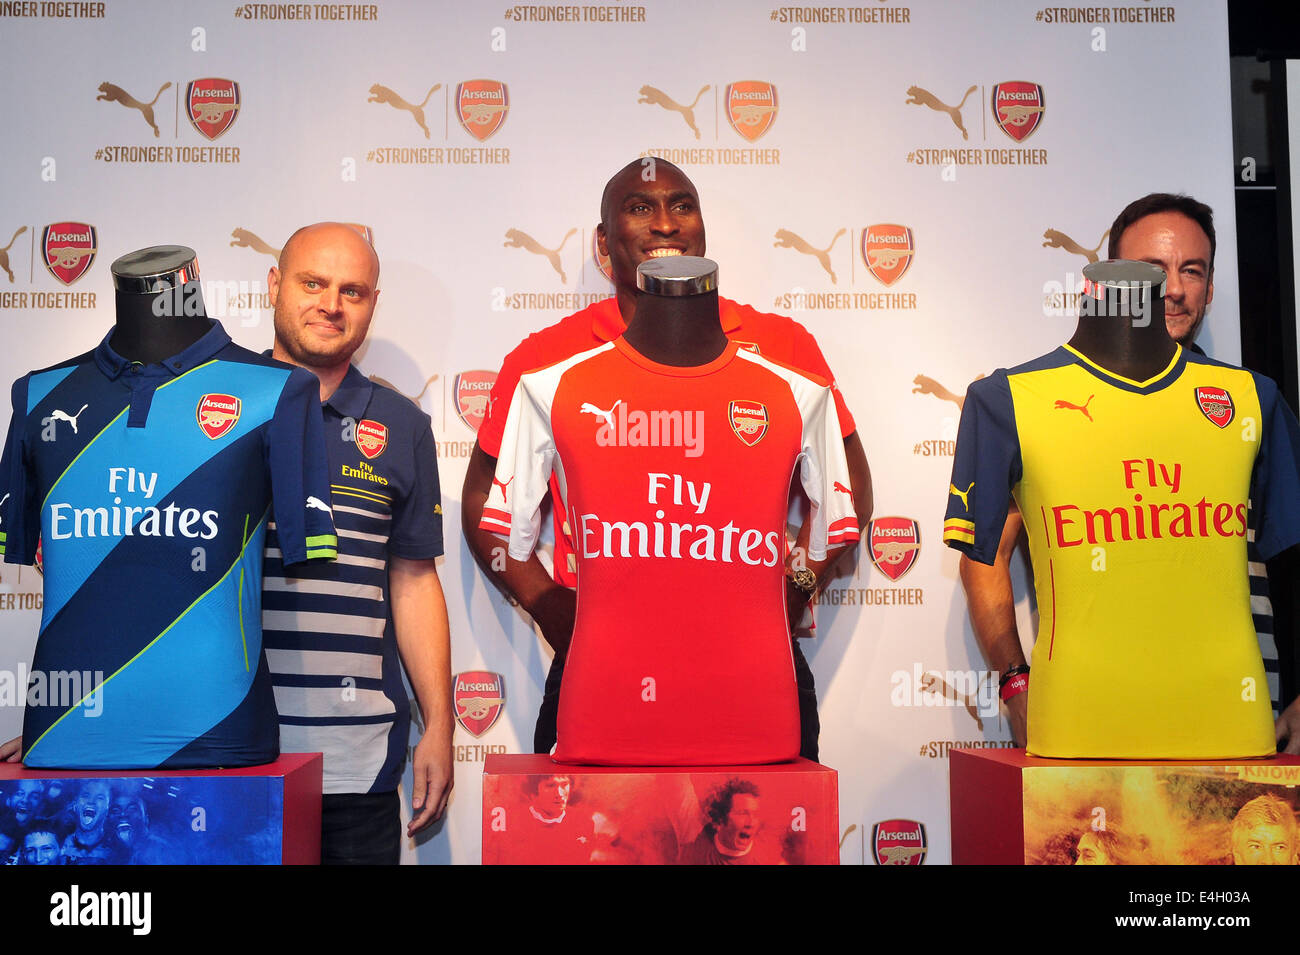 Singapore. 11th July, 2014. Former Arsenal player Sol Campbell (C) attends the Arsenal's new kit launch in Singapore, - Stock Image